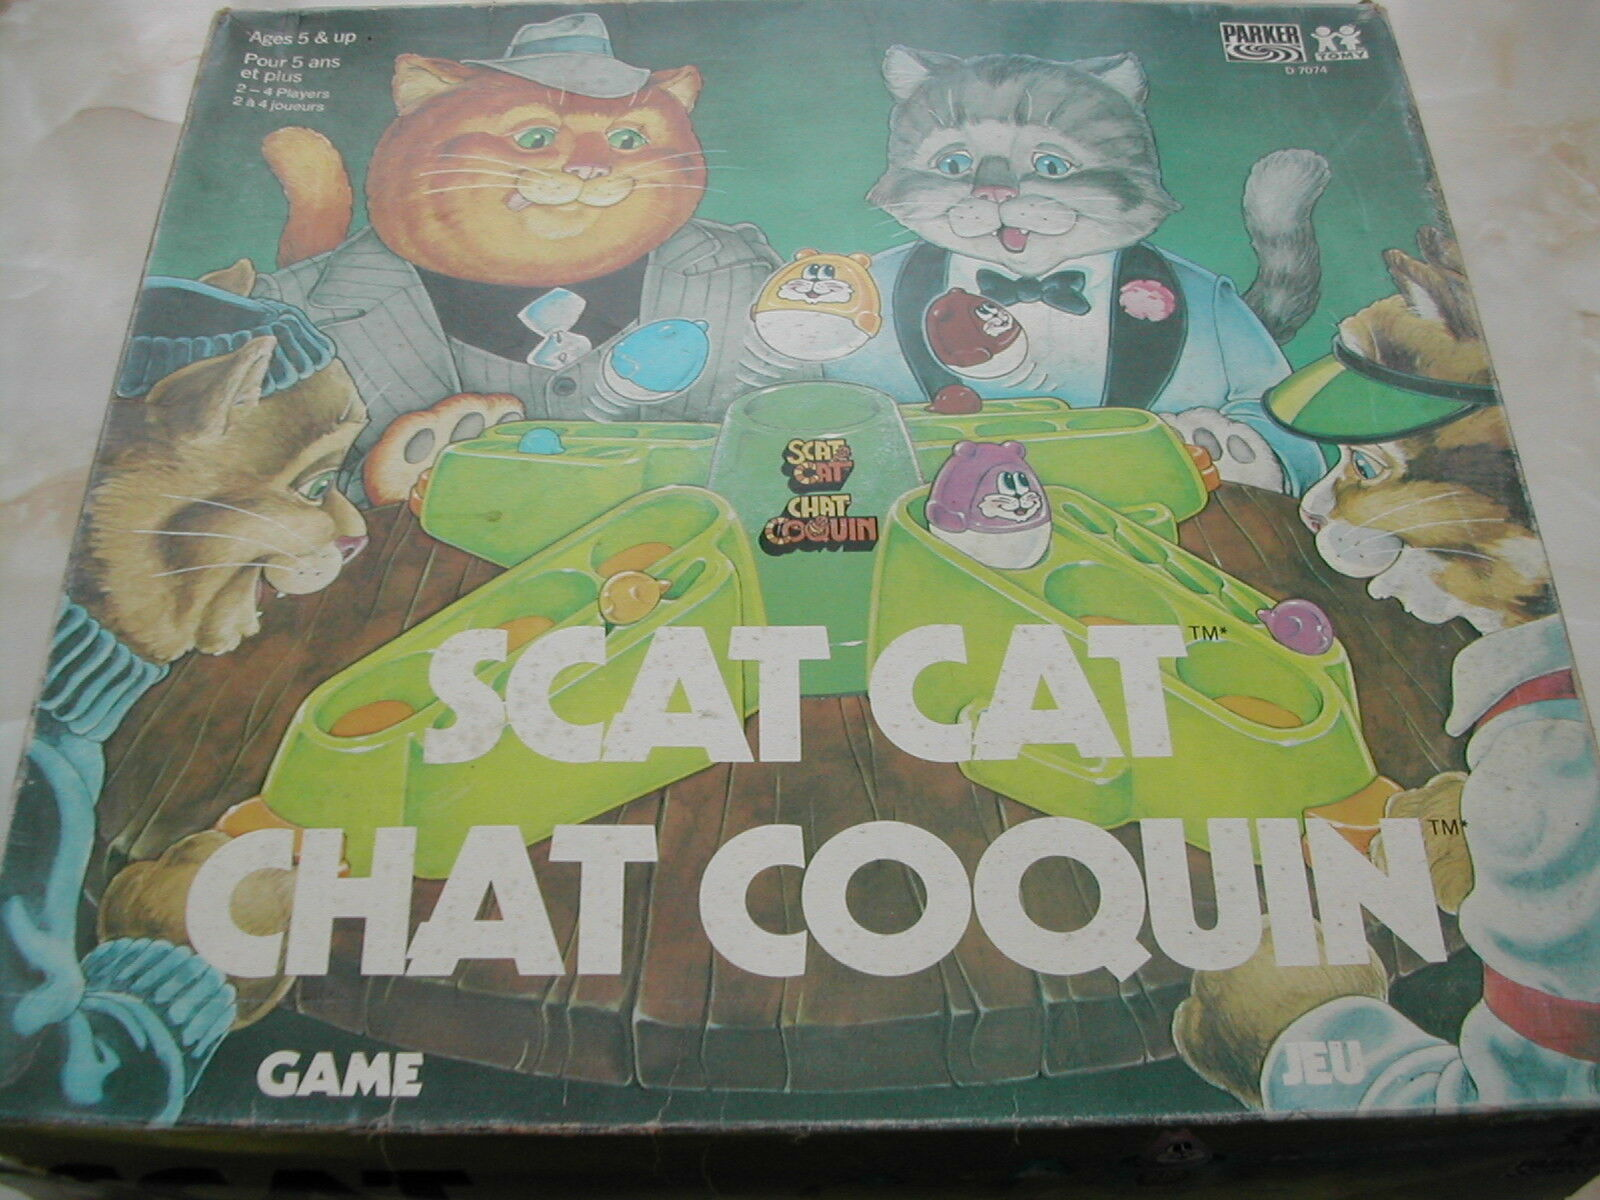 SCAT CAT GAME - SCAT CAT - PARKER - VINTAGE GAME - RARE - CHAT COQUIN - FUN GAME